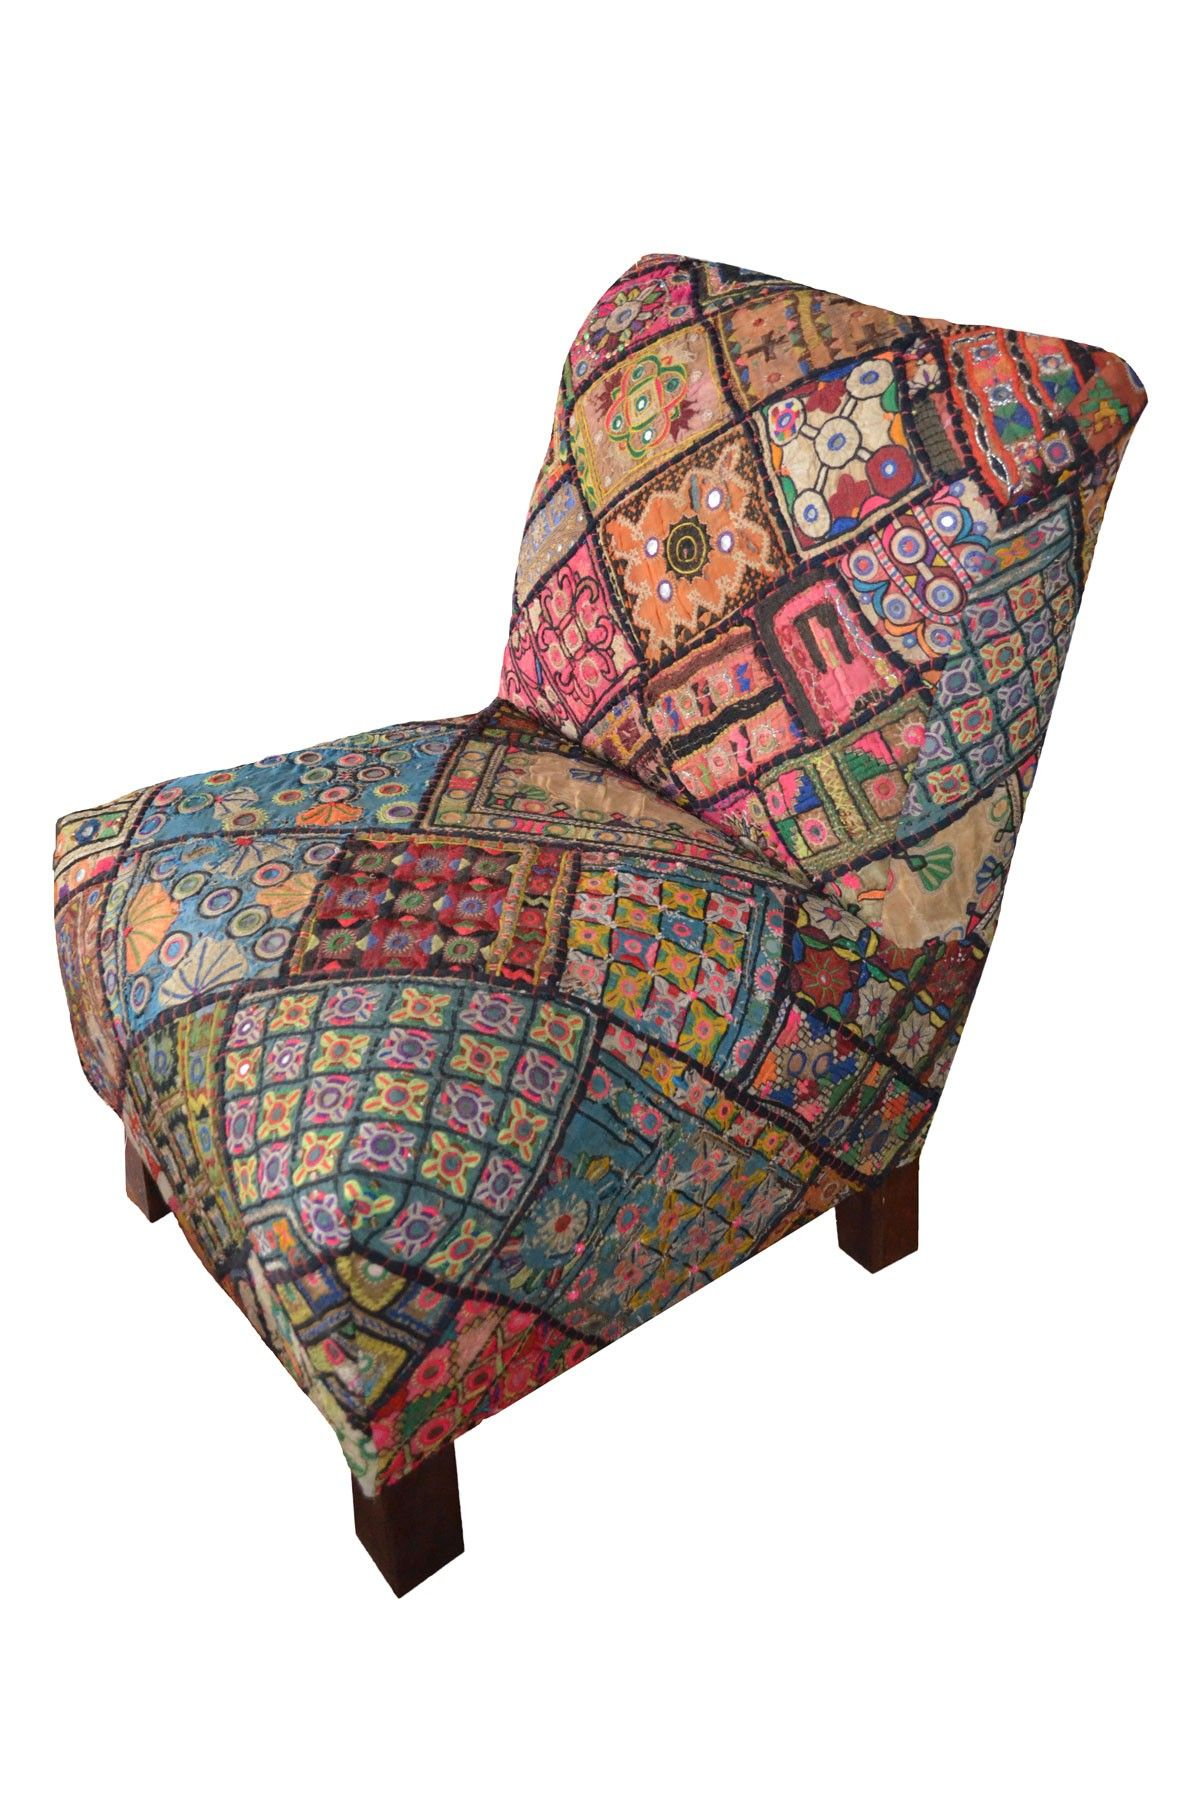 Moroccan chair  sc 1 th 275 & Moroccan chair | around the house | Pinterest | Chairs Products and ...